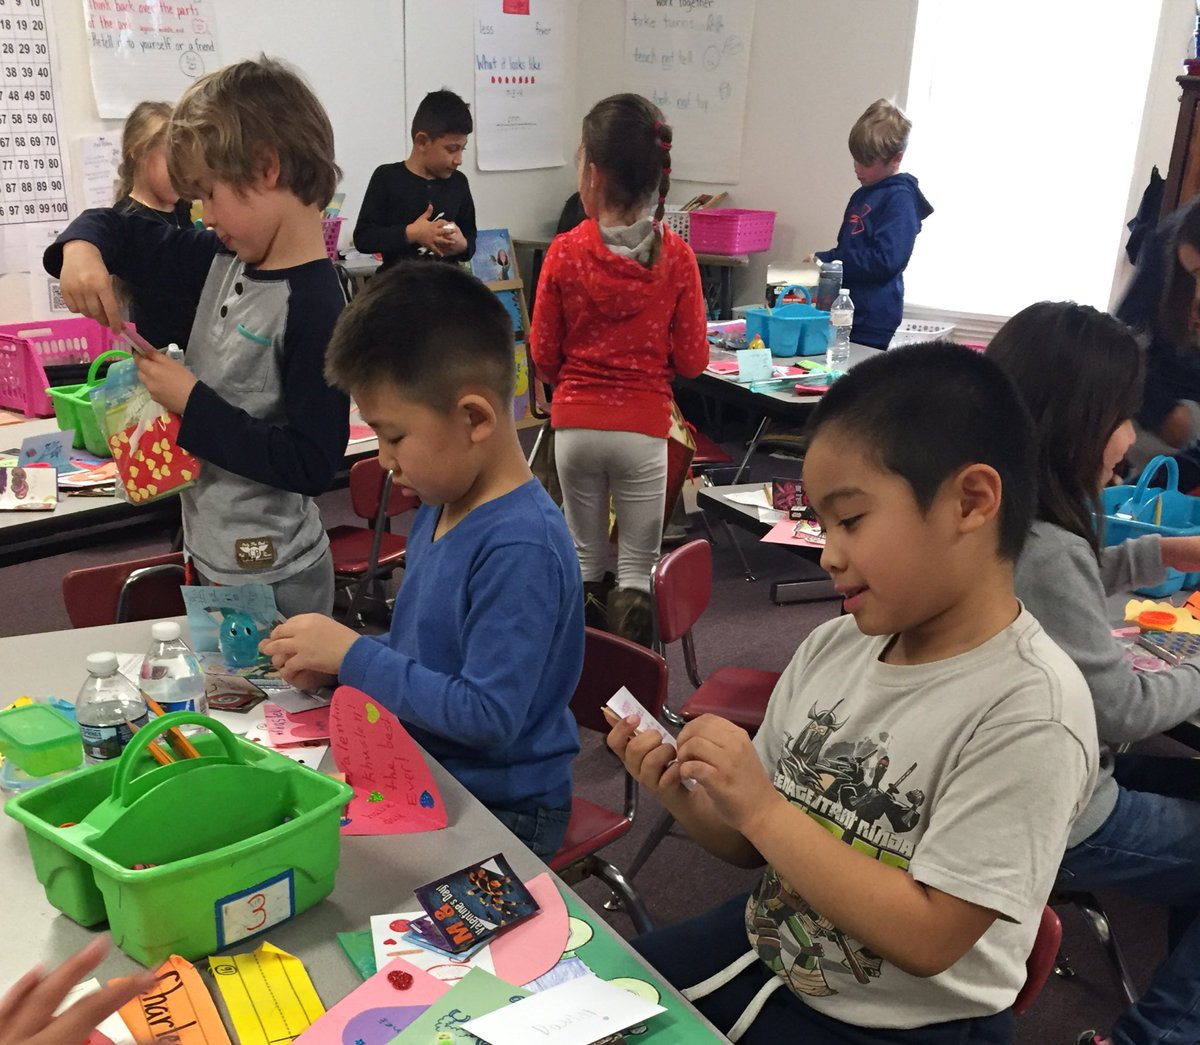 Valentines cards, what a great way to practice reading in 1st grade! 😍 <a target='_blank' href='http://twitter.com/AbingdonGIFT'>@AbingdonGIFT</a> <a target='_blank' href='https://t.co/zyfso7EMM5'>https://t.co/zyfso7EMM5</a>